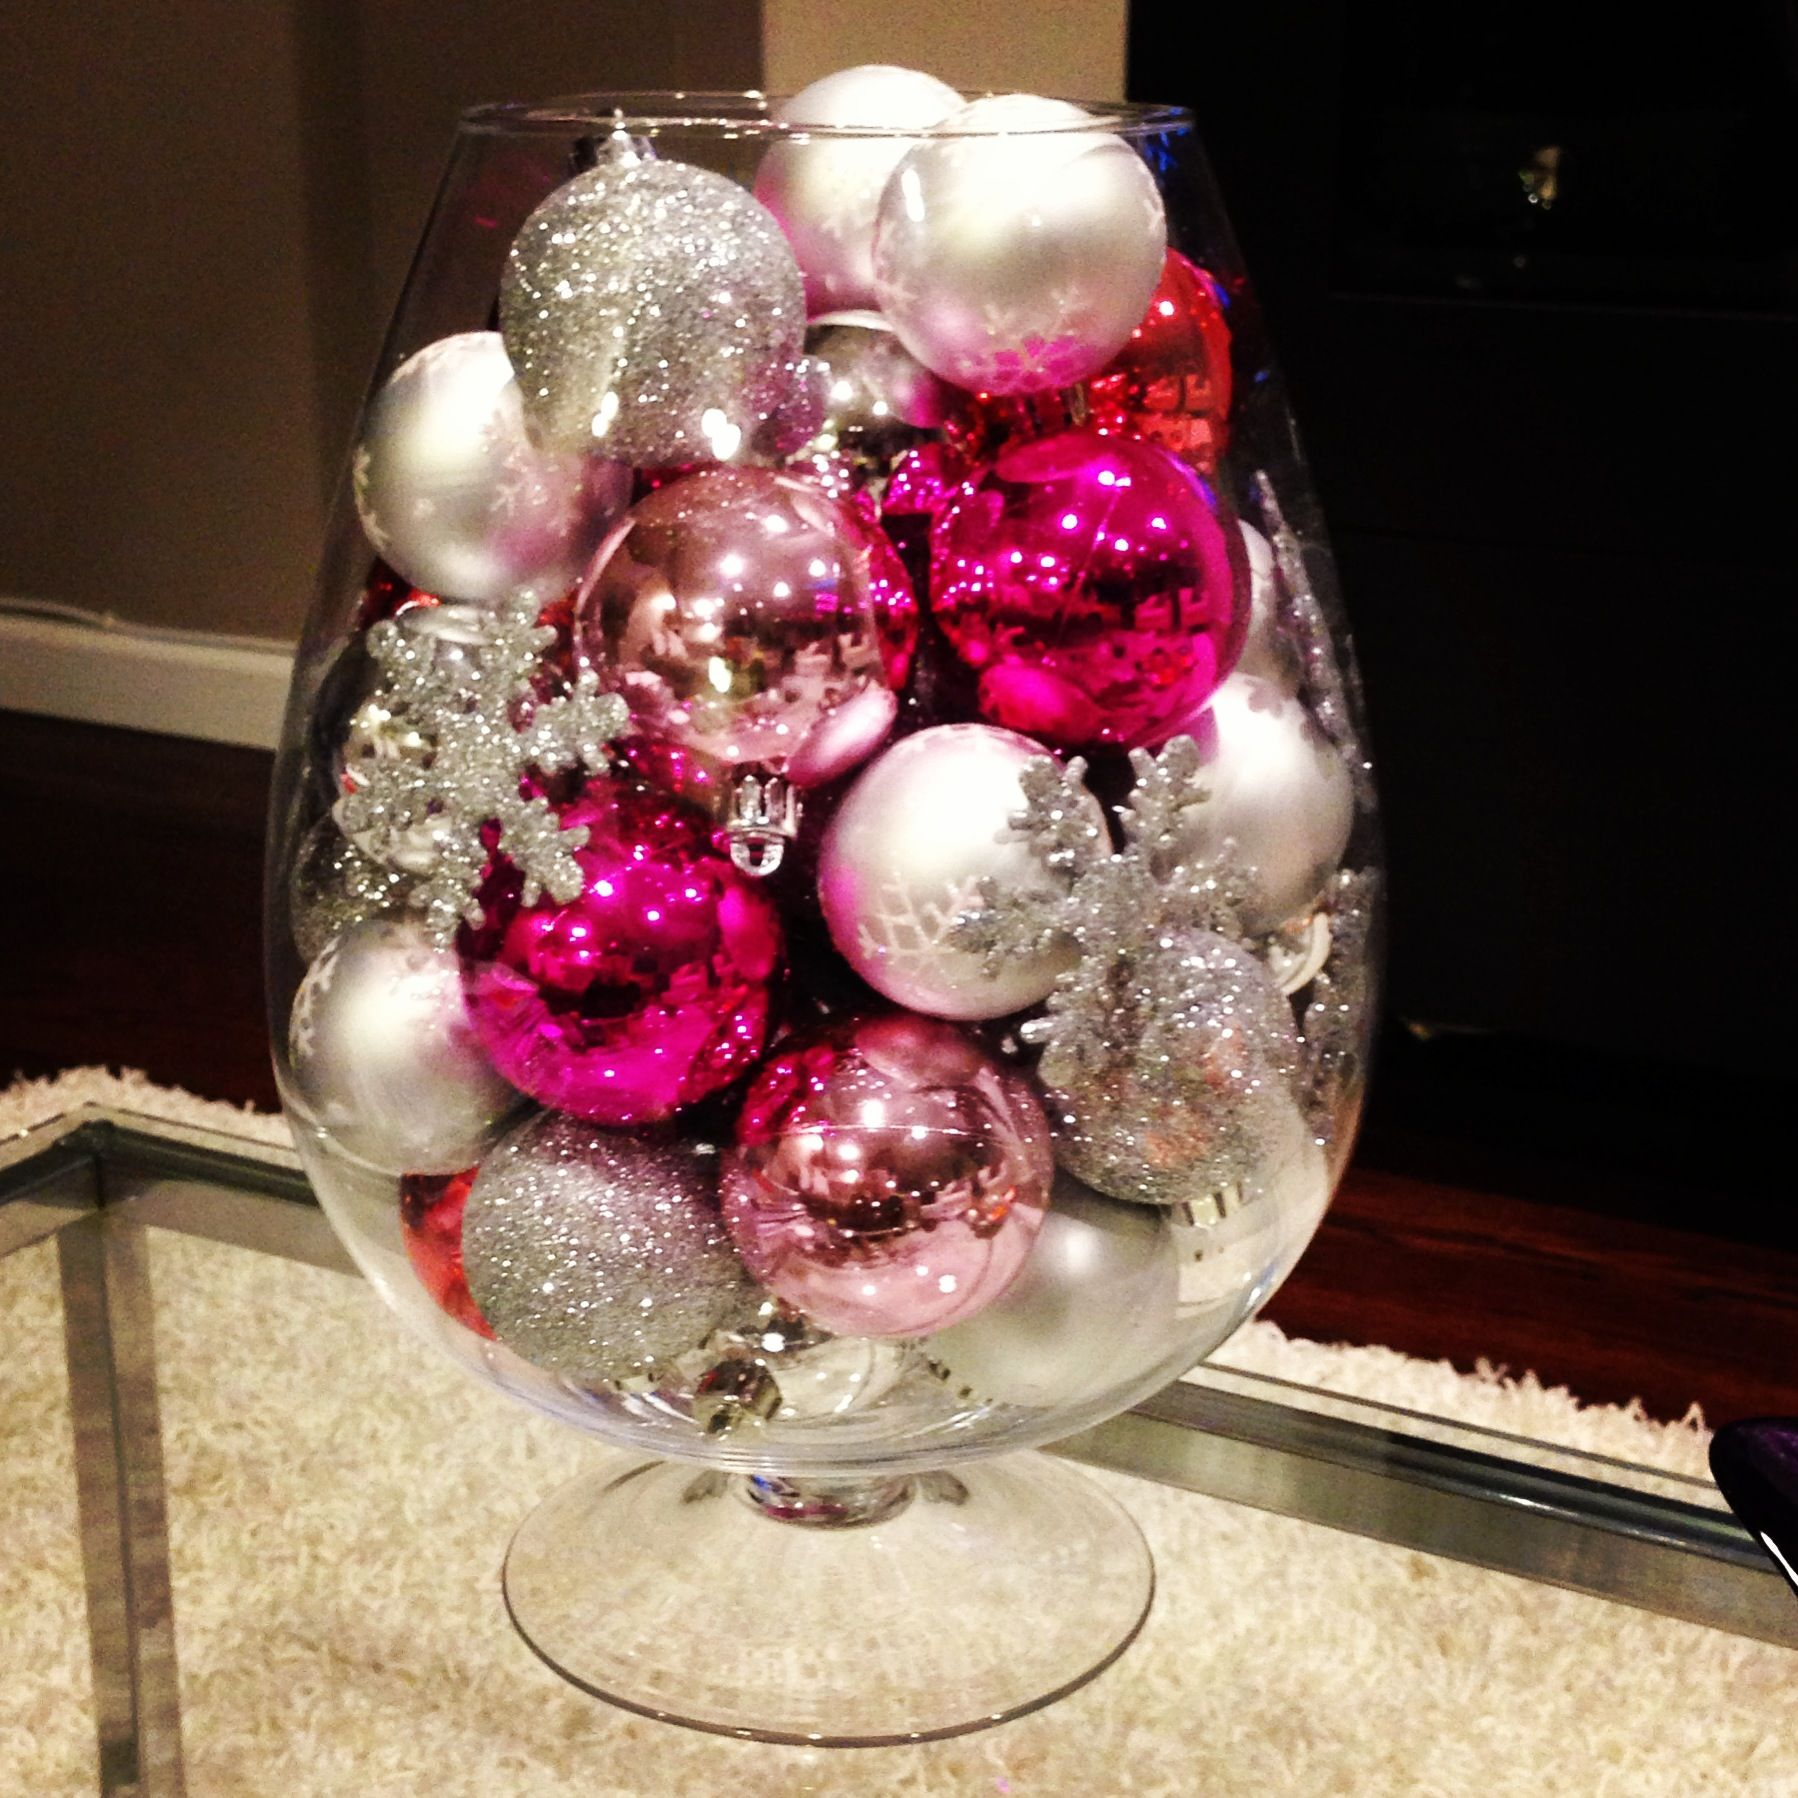 Diy christmas decoration oversized wine glass vase from diy christmas decor oversized wine glass vase from marshalls and add some pretty ornaments i like the silver snowflake ornaments in this vase reviewsmspy